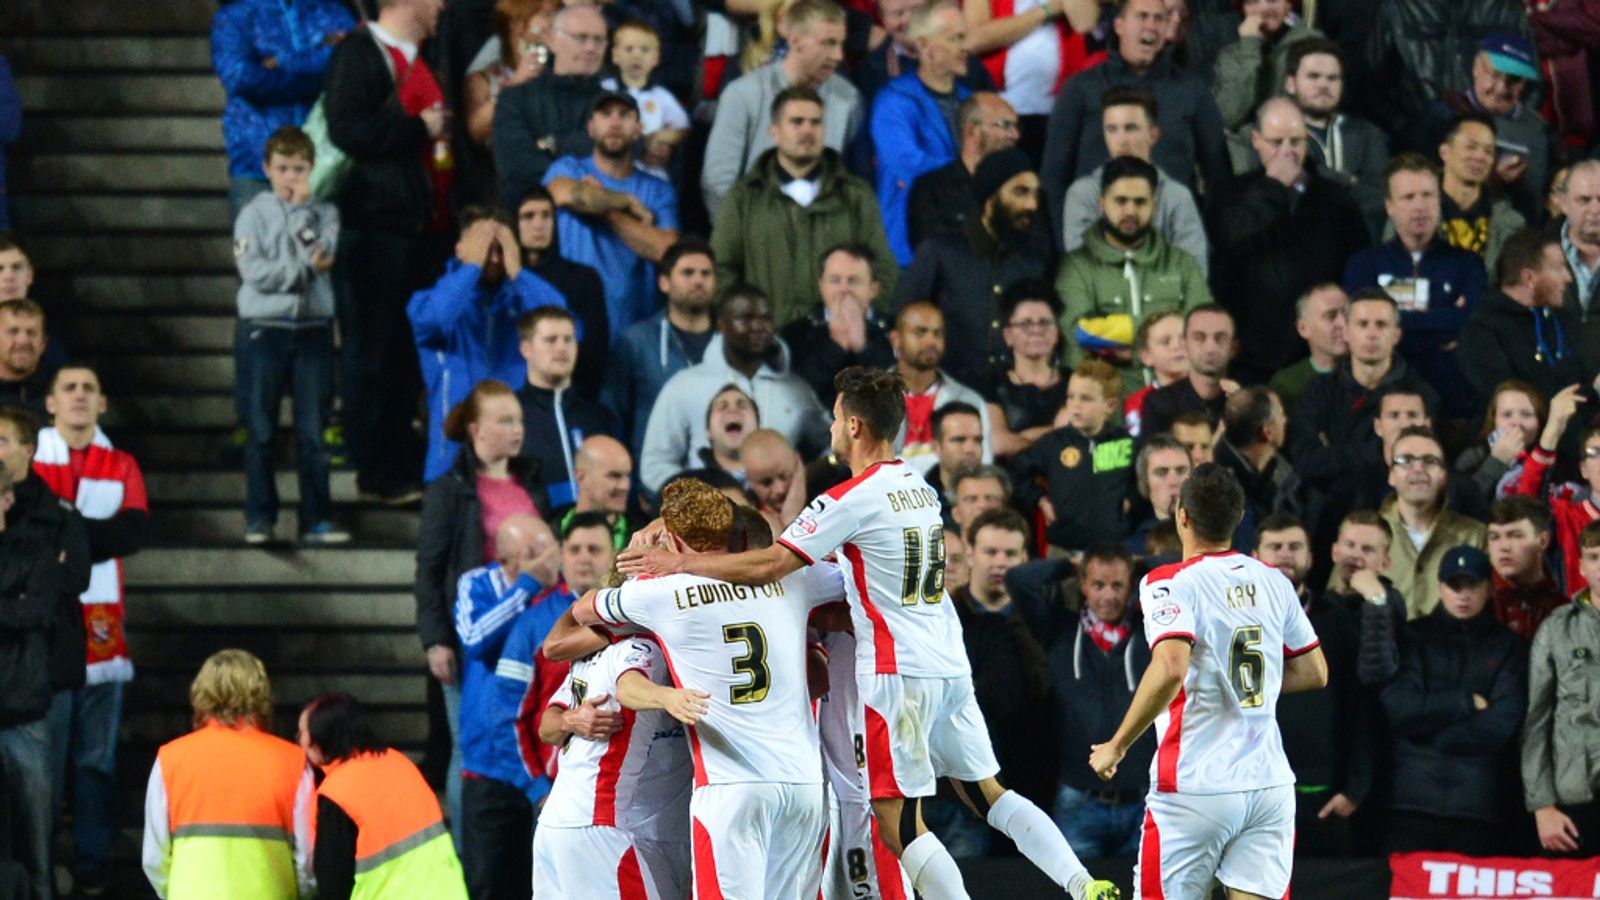 MK Dons 4 - 0 Man Utd - Match Report & Highlights